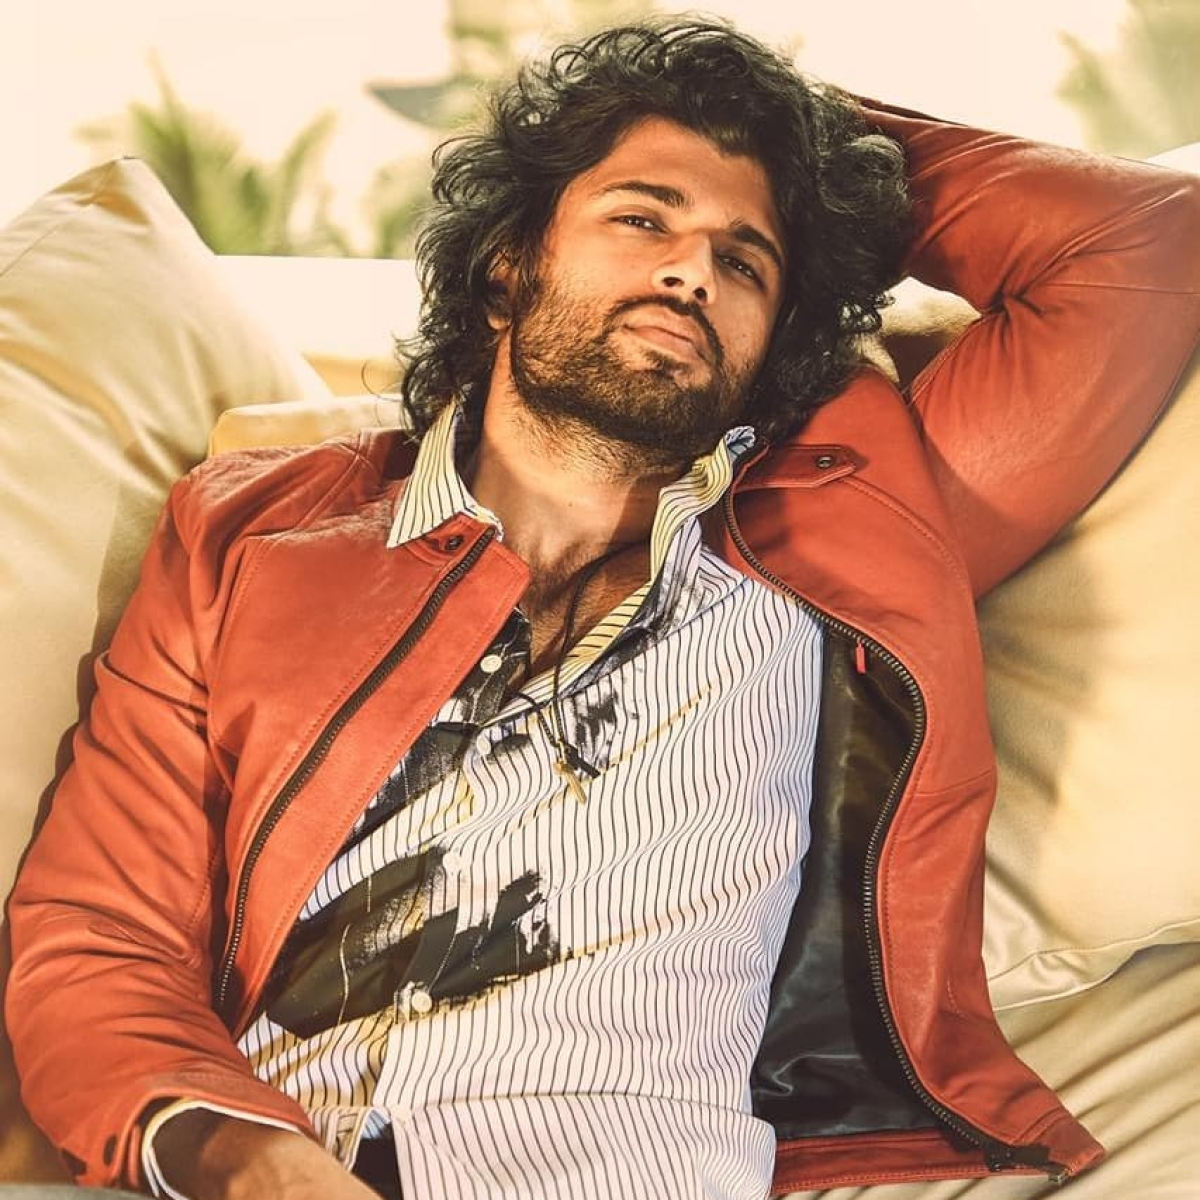 'Go to North Korea': Vijay Deverakonda panned by netizens for saying 'dictatorship is the right way'